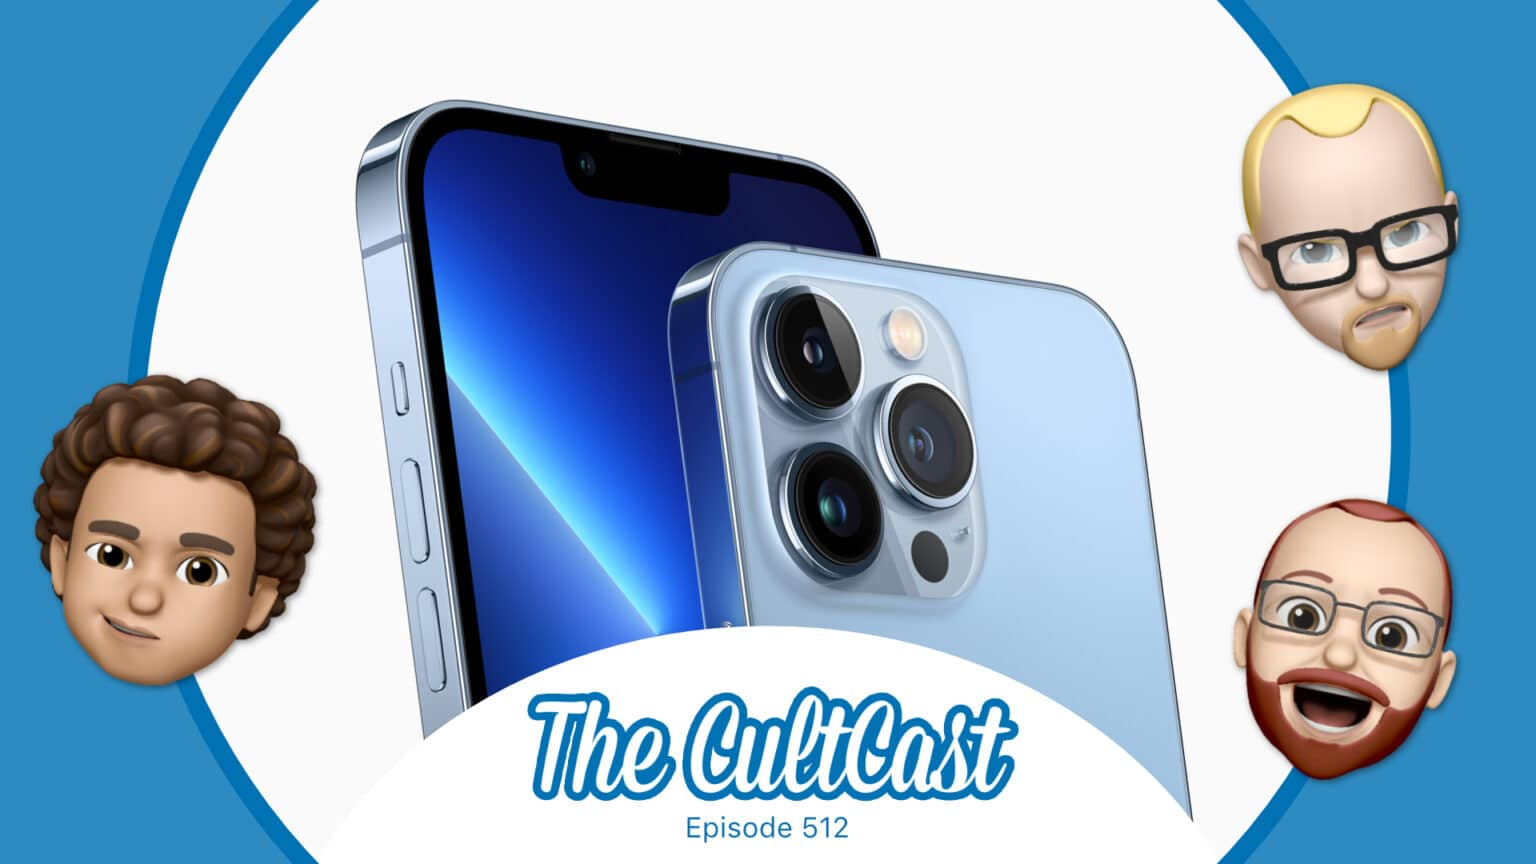 iPhone 13 Pro reviews: One week on! This week on The CultCast, Cult of Mac's Apple podcast.